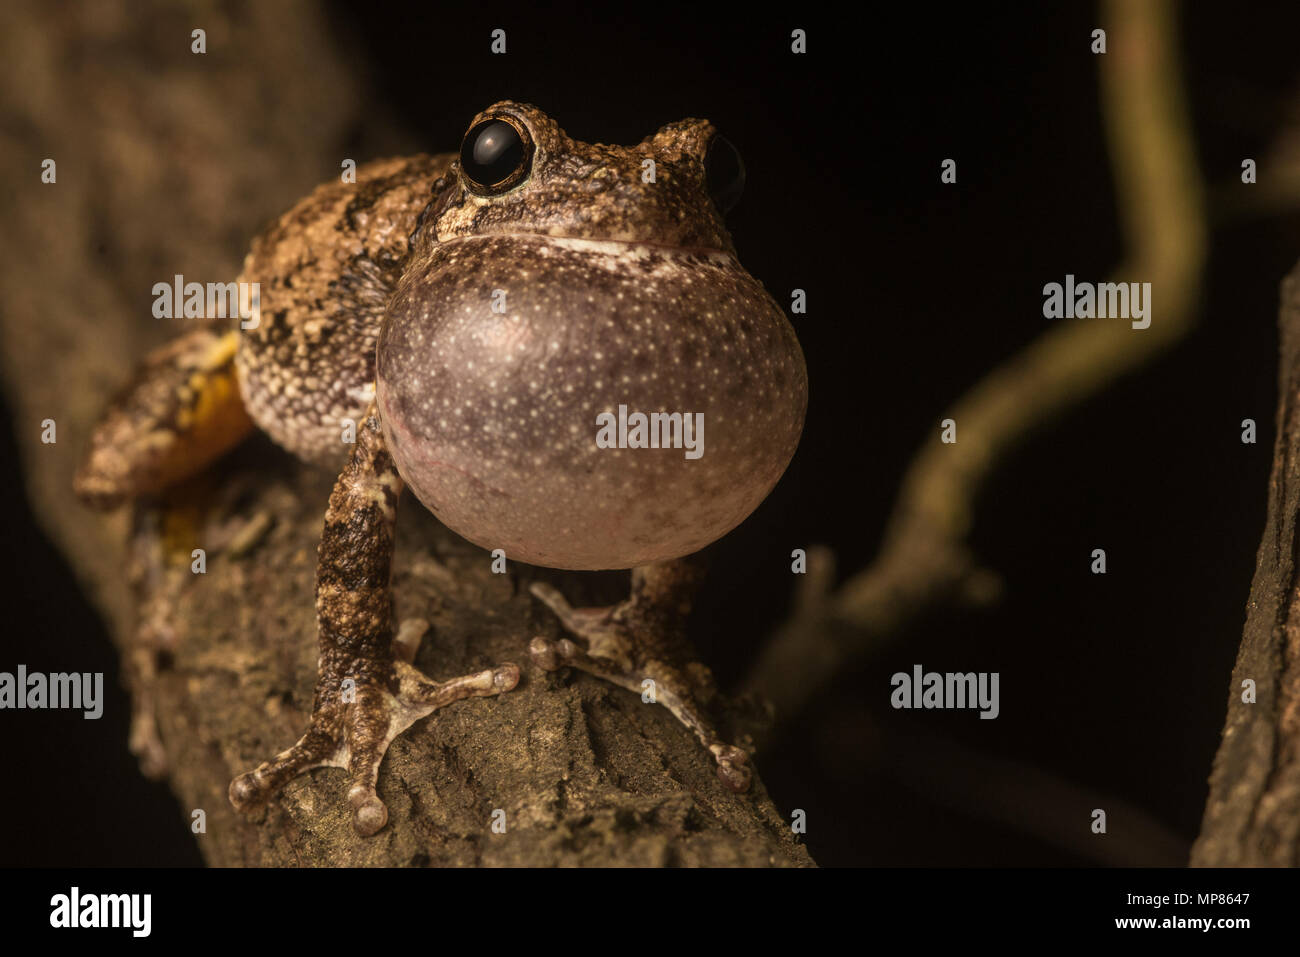 A male Cope's gray tree frog (Hyla chrysoscelis) loudly trilling from a tree branch in order to attract a female. - Stock Image